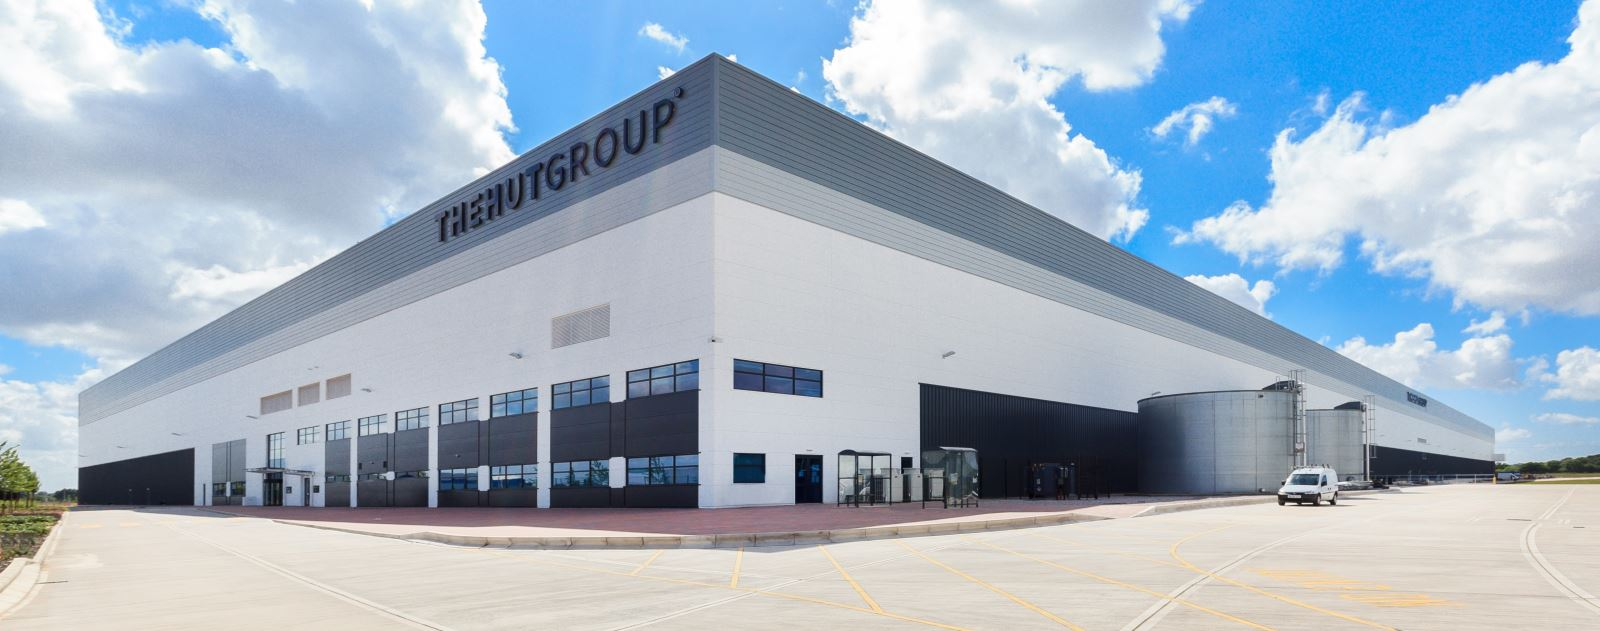 The Hut Groups 1m sq ft warehouse